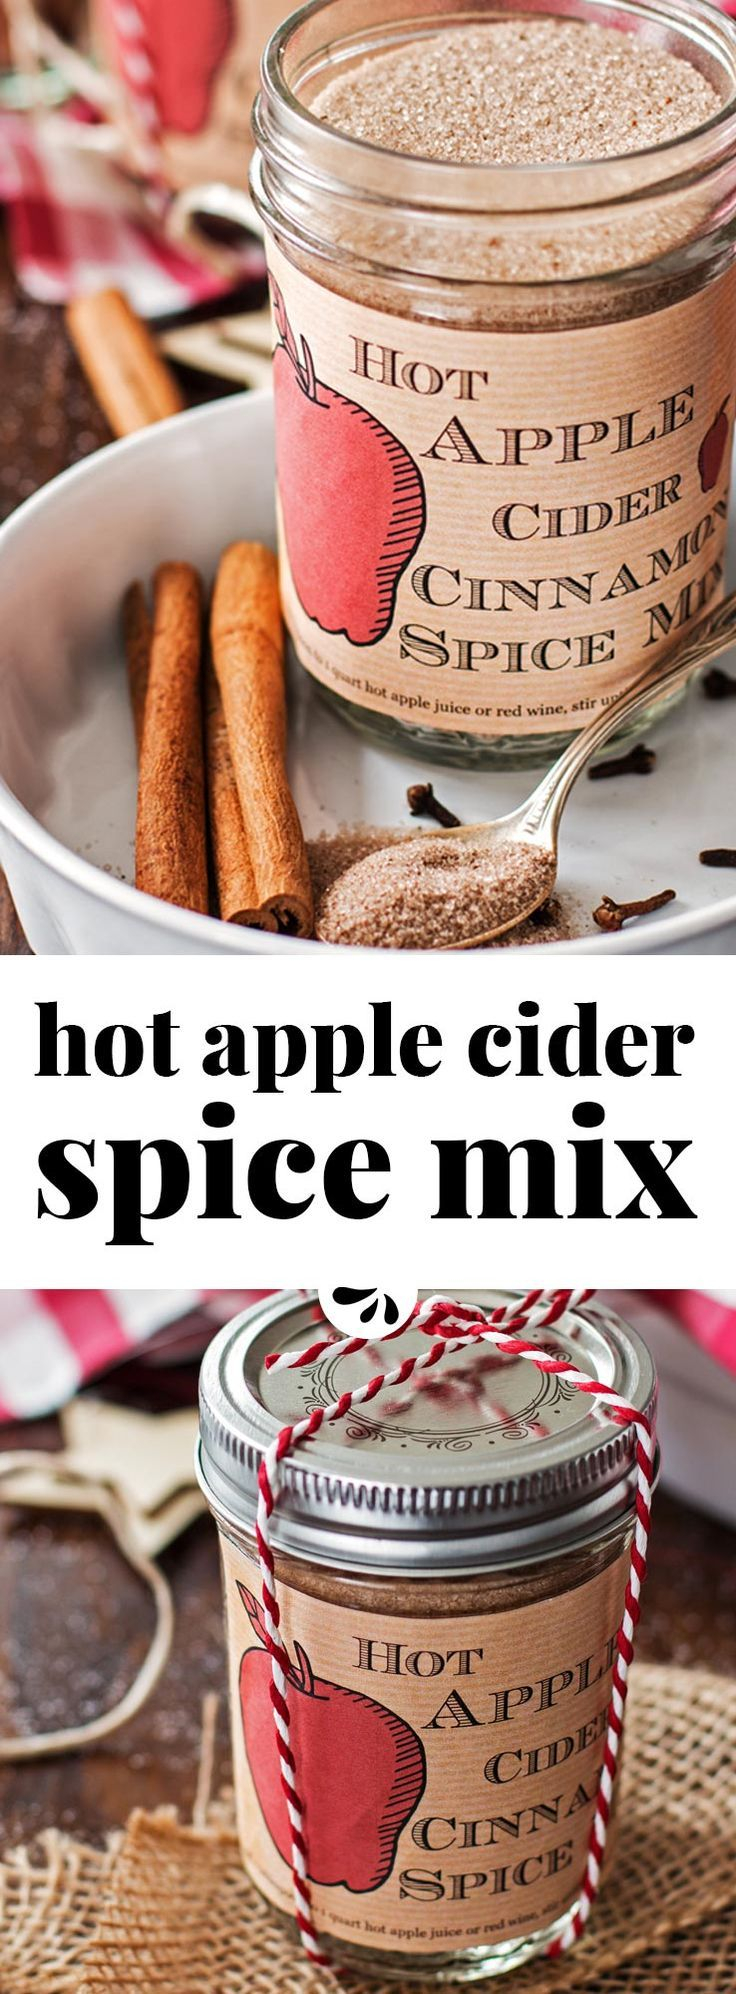 This recipe for homemade Hot Apple Cider Cinnamon Spice Mix is amazing! It's easy to make with few ingredients and makes for a perfect DIY Thanksgiving or Christmas food gift! Stir into hot apple juice or red wine for a delicious and warming holiday drink!